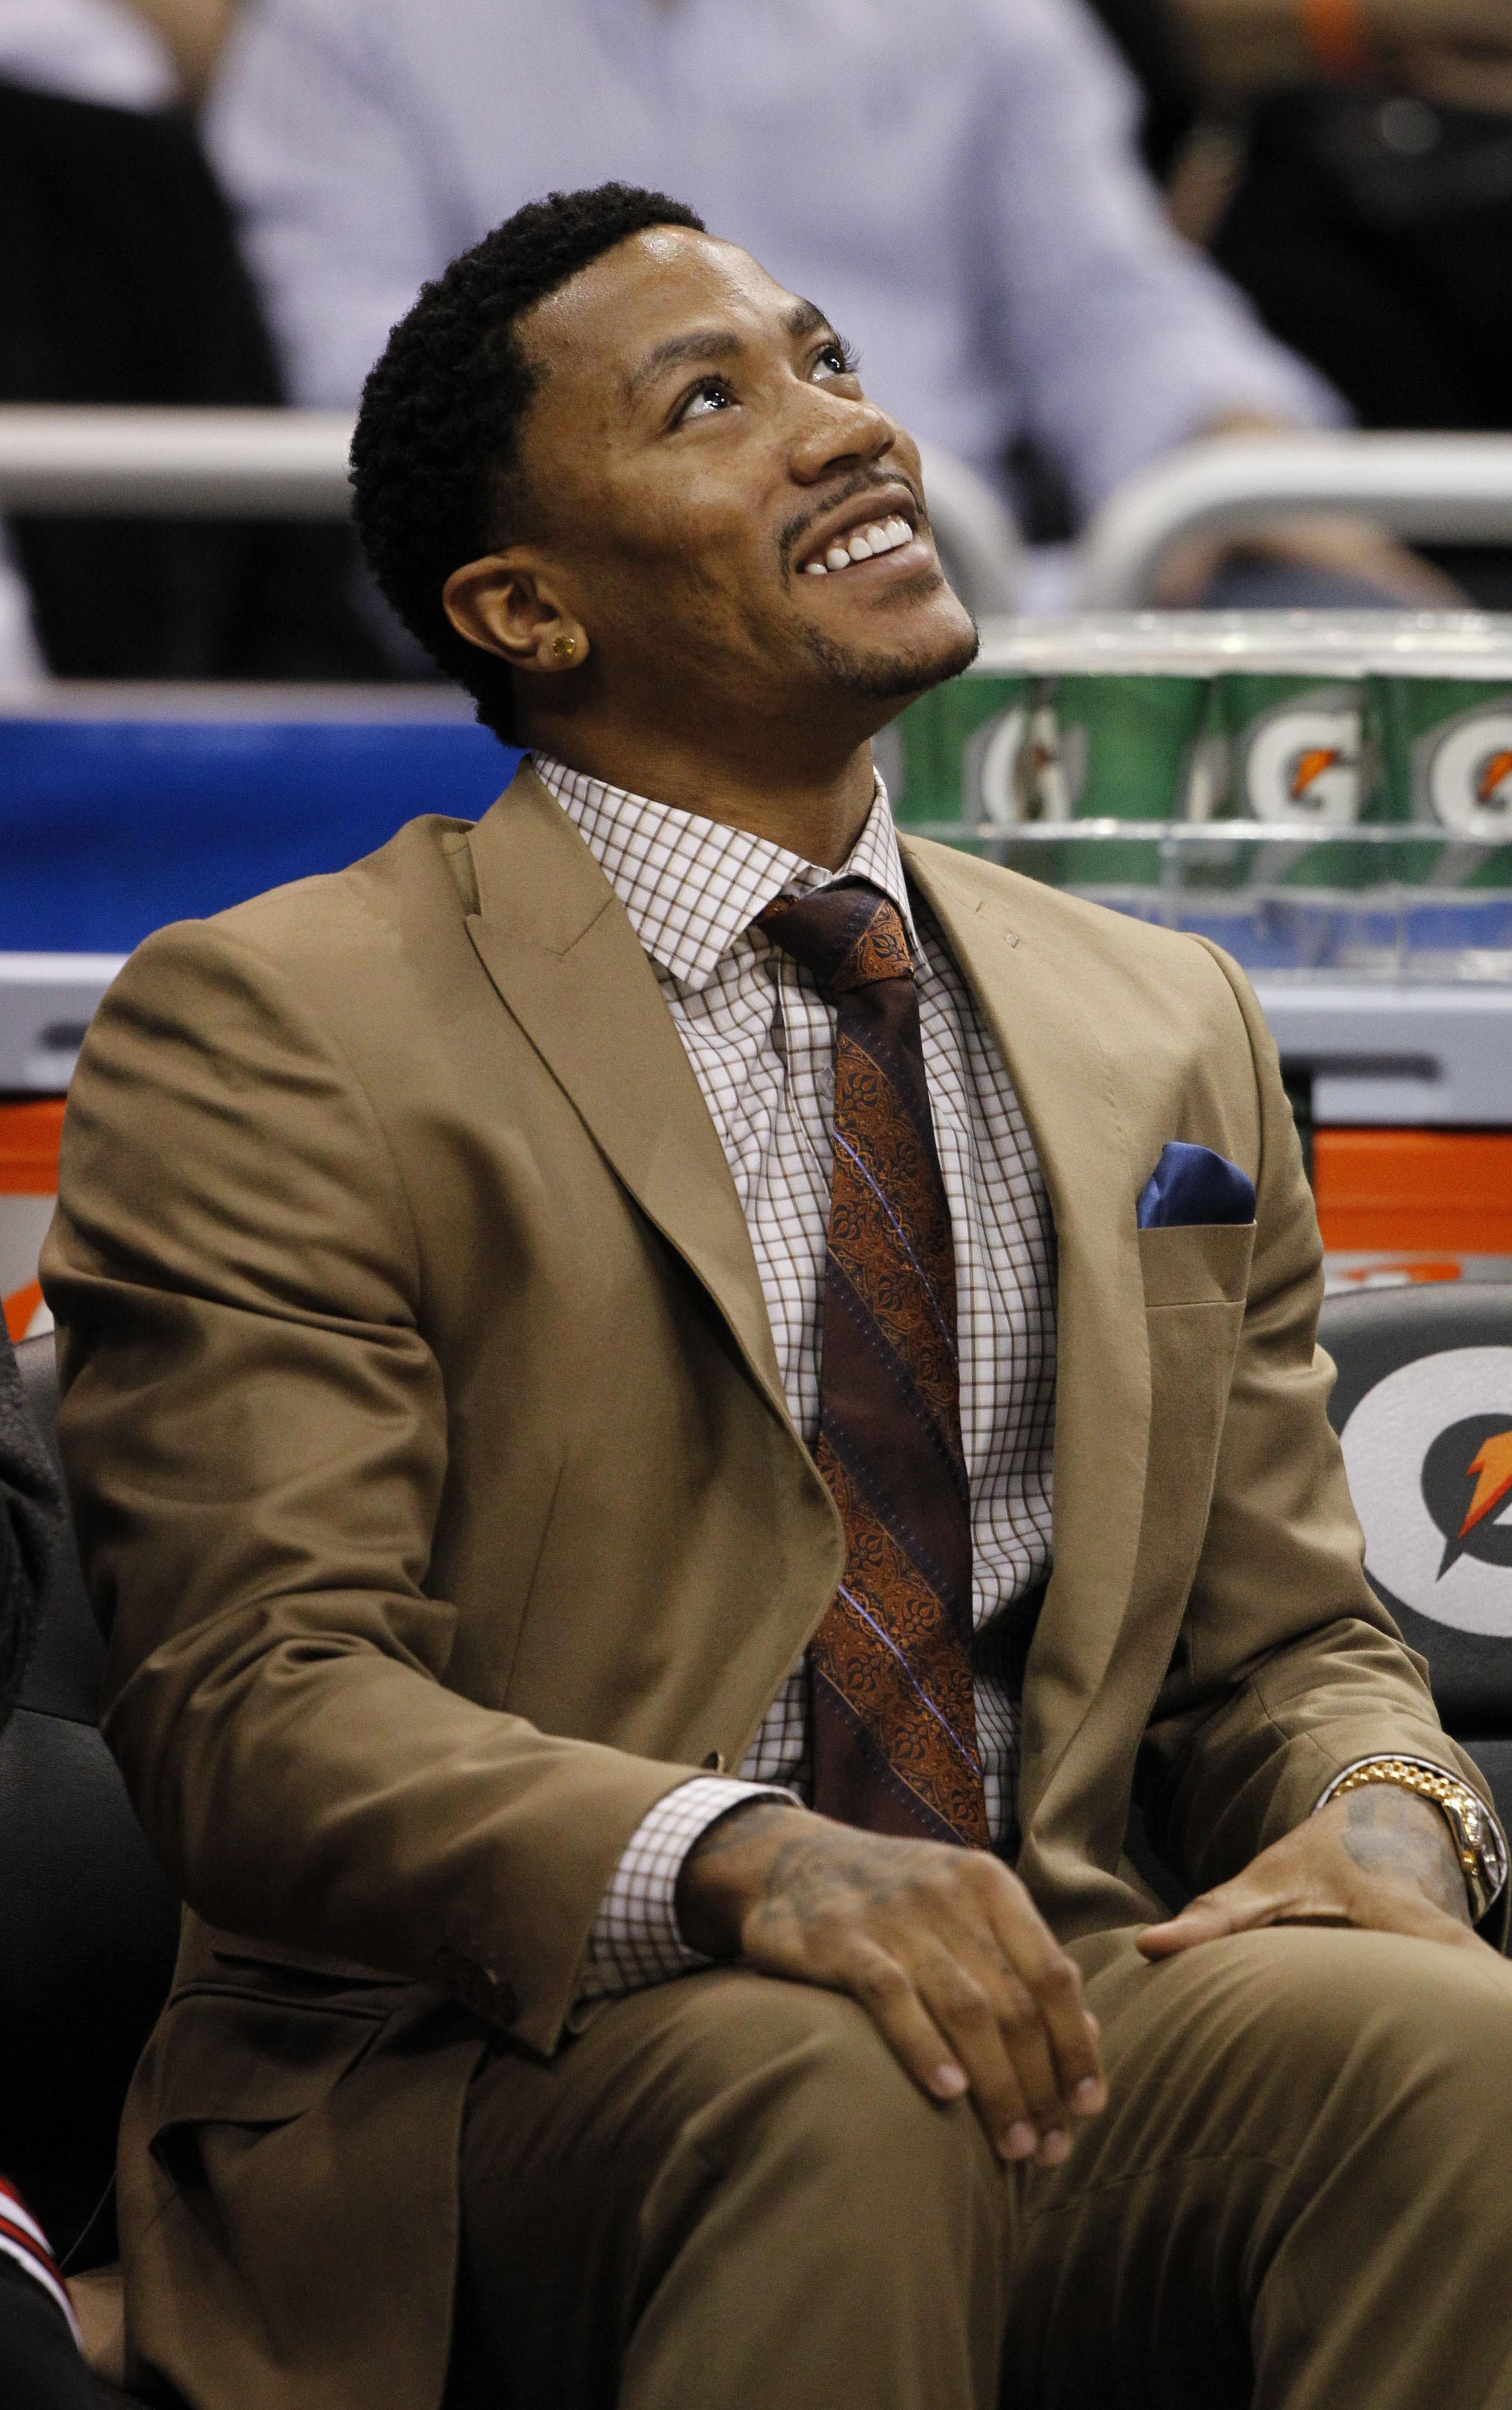 Derrick Rose donates $1 million to Chicago charity